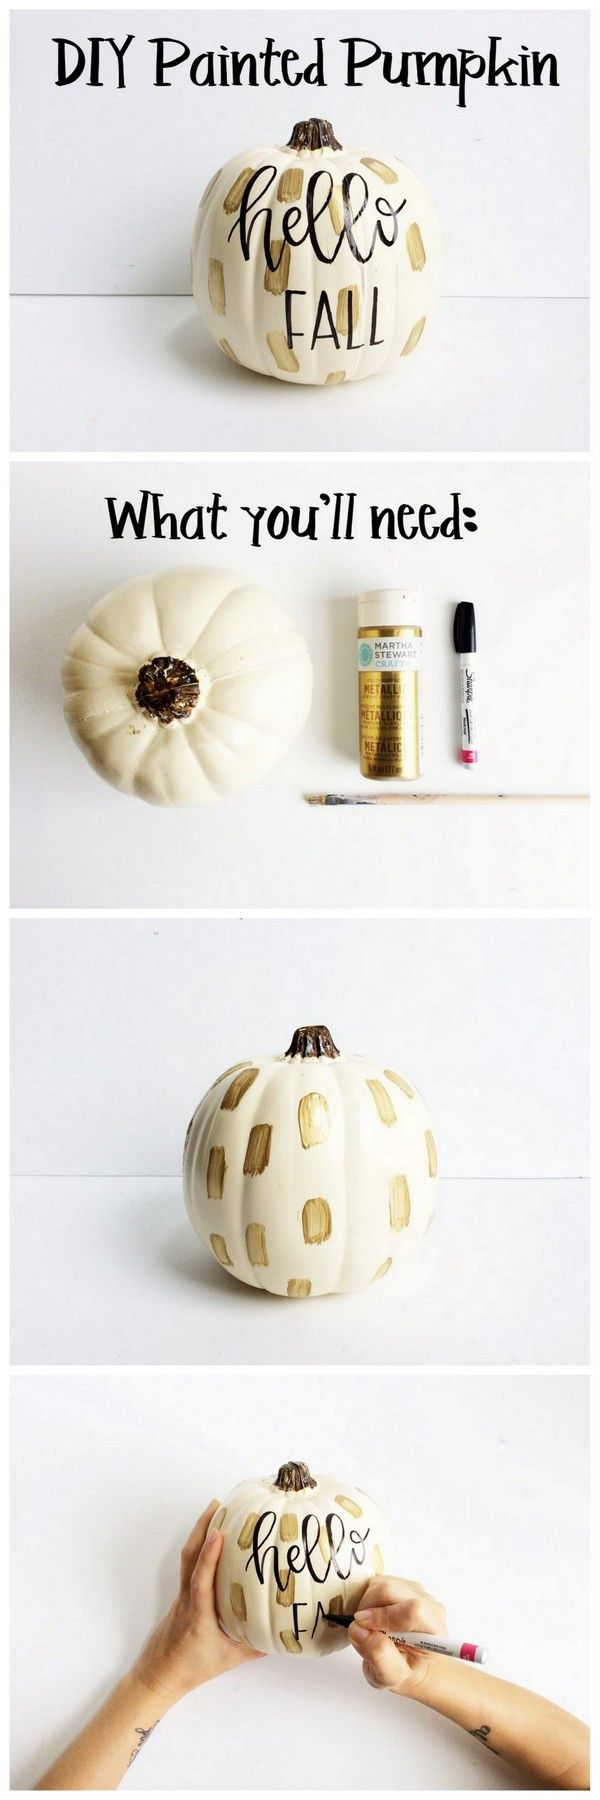 I'm totally going to decorate early this year for fall/halloween, since I missed the past 2 yrs...